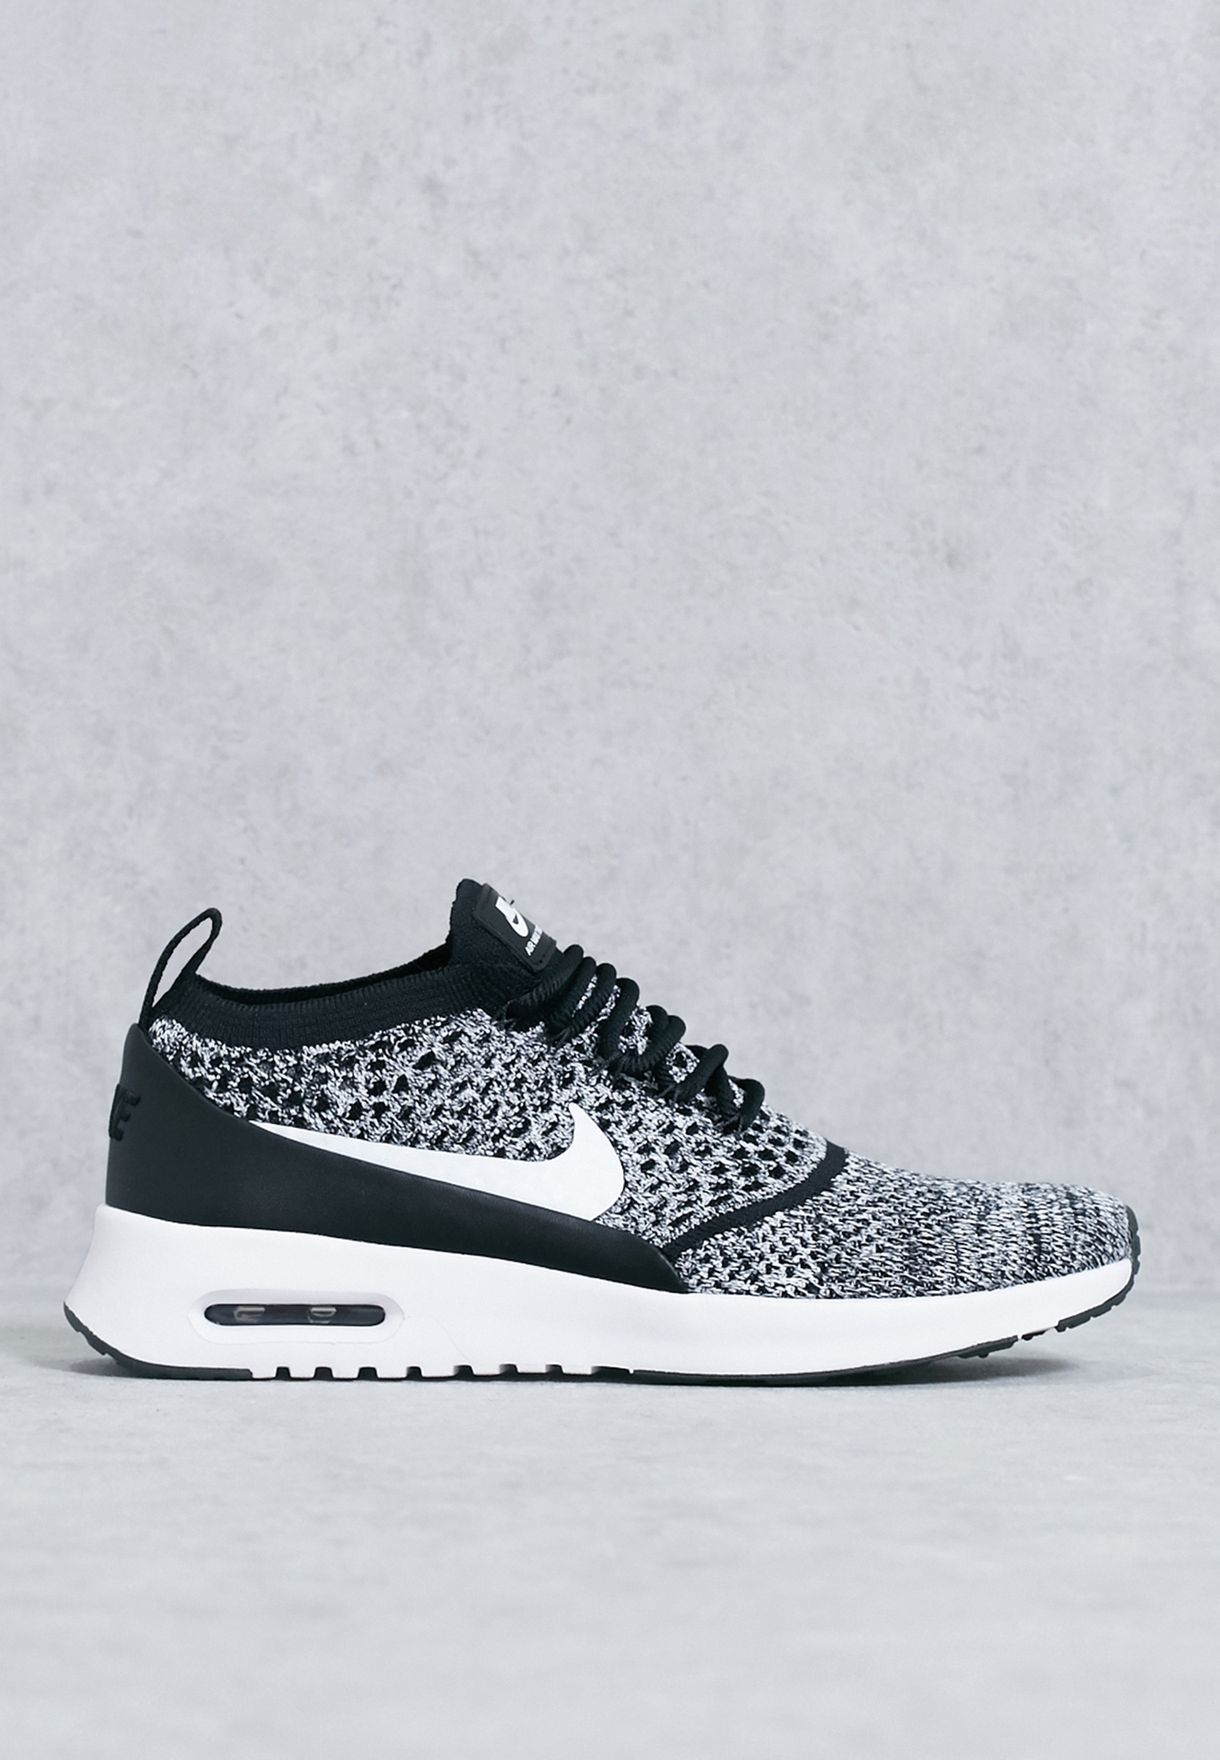 f60fe8f340 Shop Nike monochrome Air Max Thea Ultra Flyknit 881175-001 for Women ...